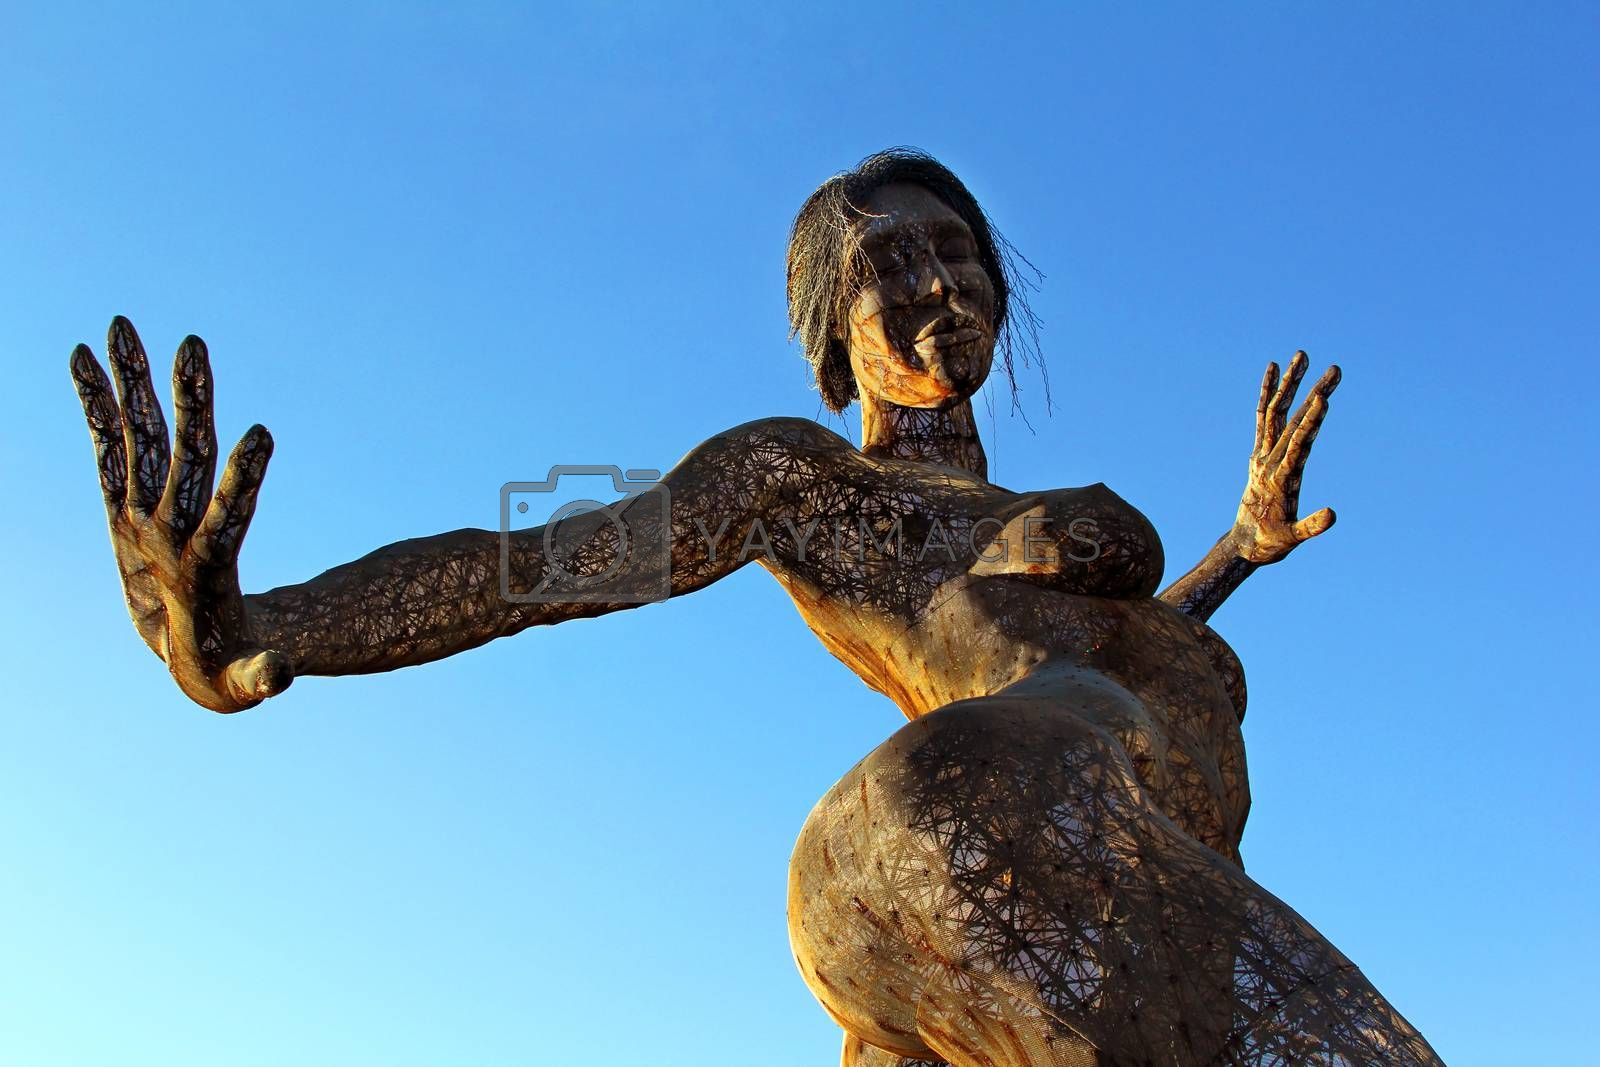 San Francisco, CA, USA - October 24, 2012: 40-foot mesh sculpture of a woman called Bliss Dance by artist Marco Cochrane on Treasure Island in San Francisco